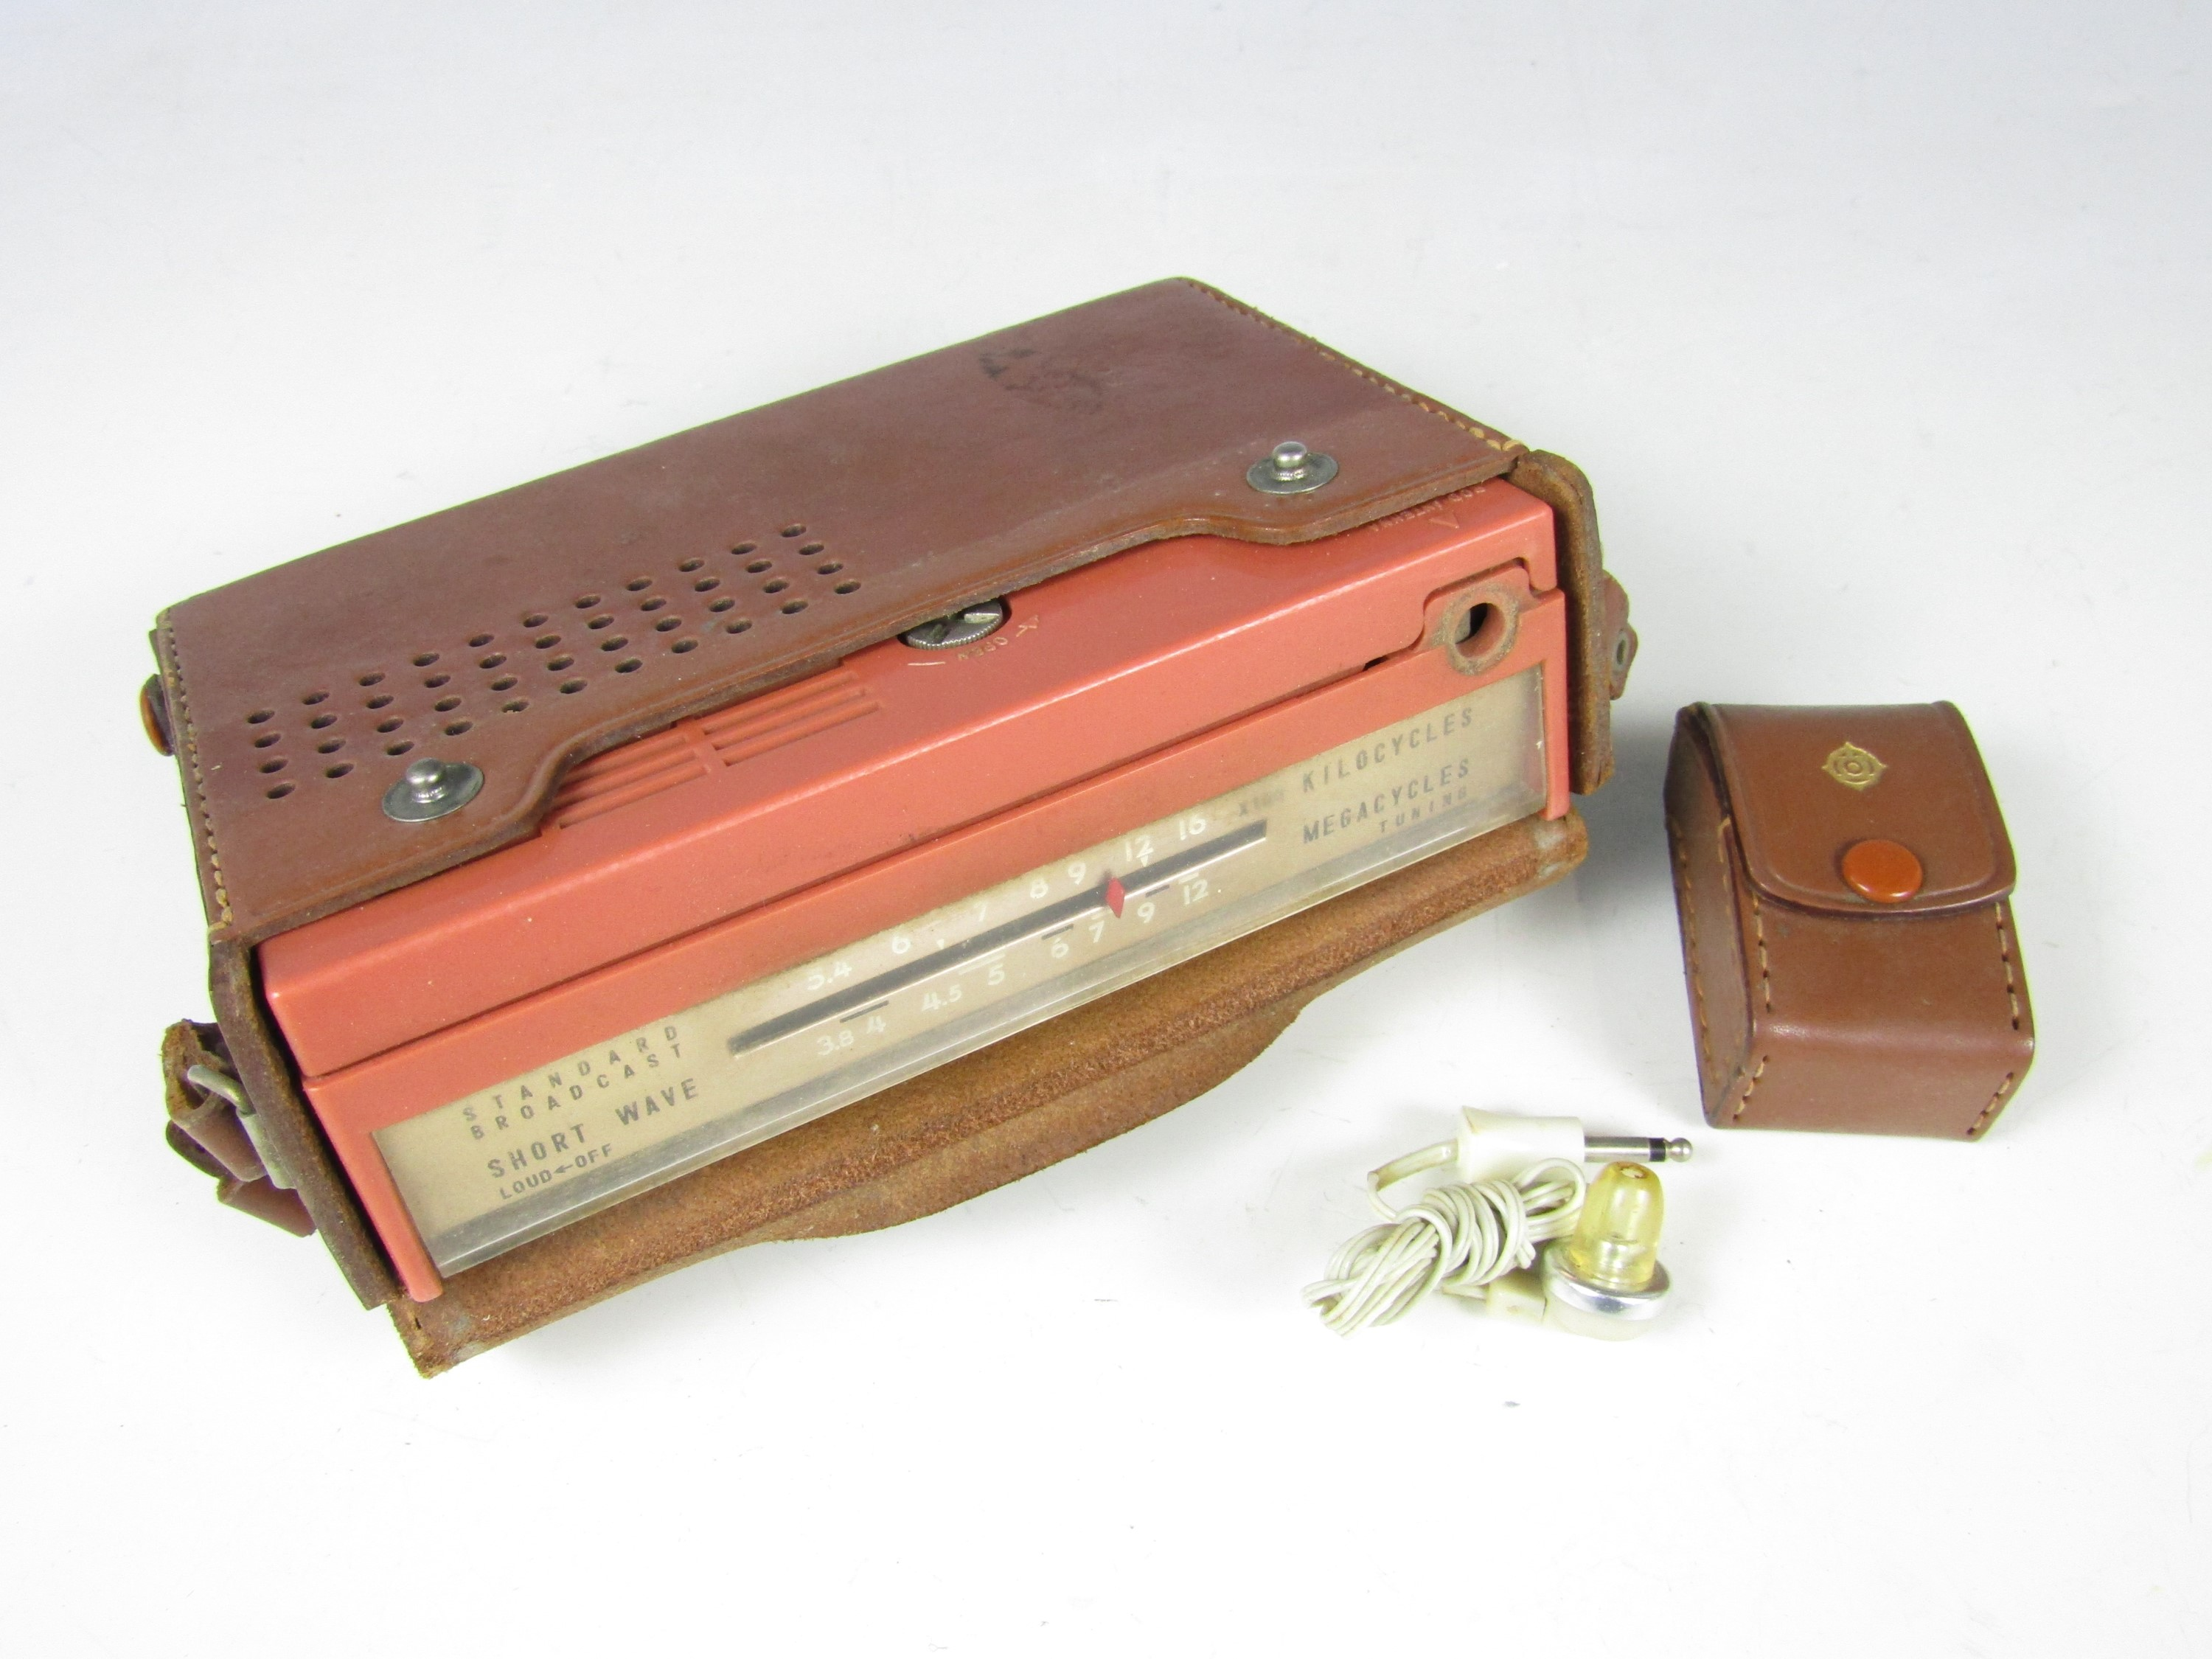 Lot 33 - A 1950's Hitachi WH-822 portable transistor radio and earphone